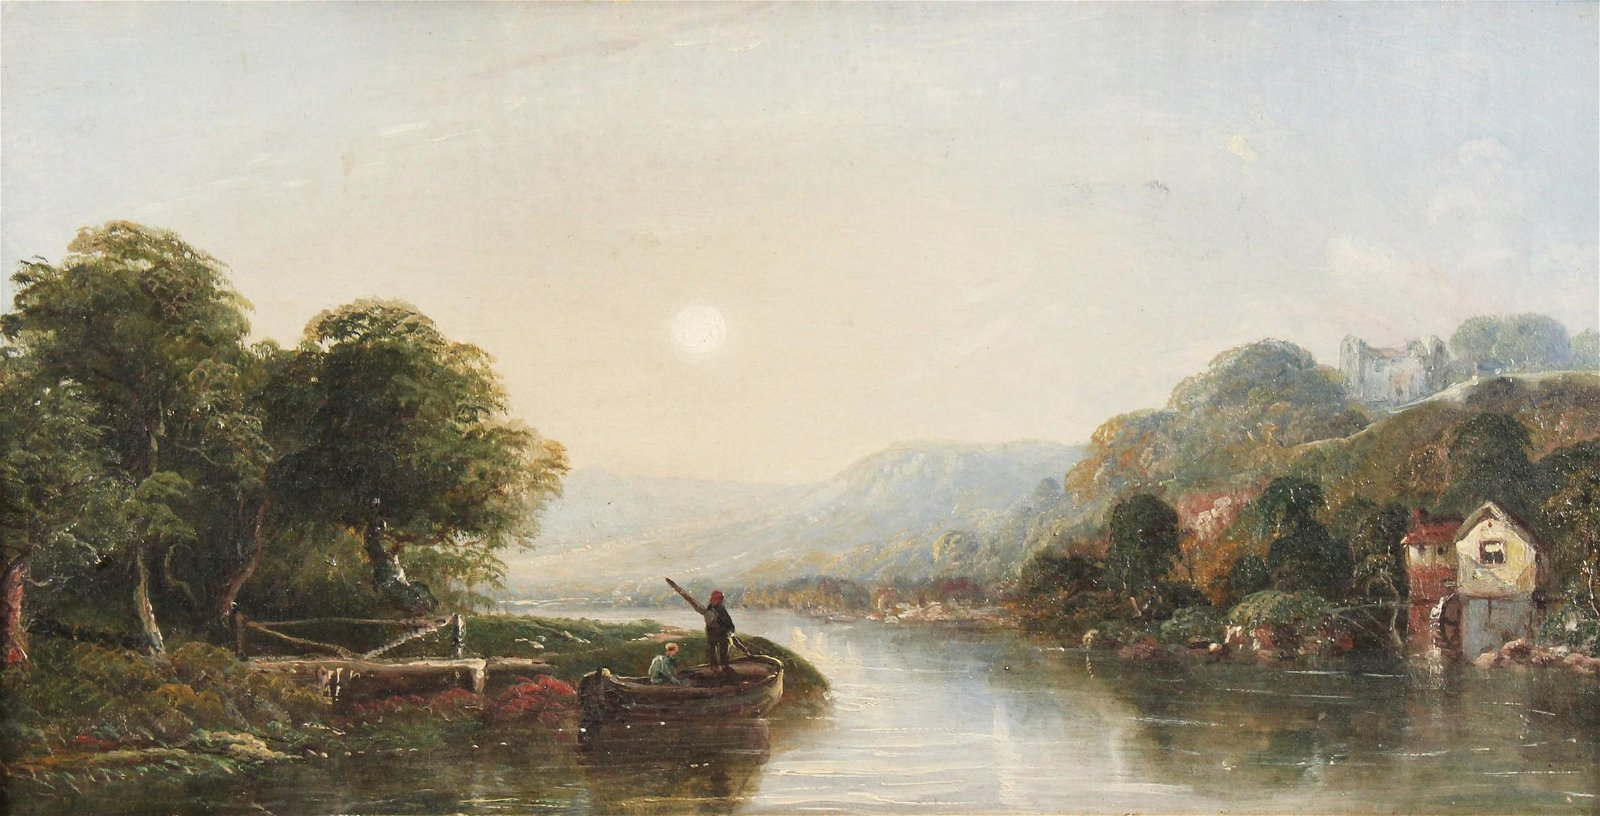 19th Century English School. Figures in a Boat Crossing